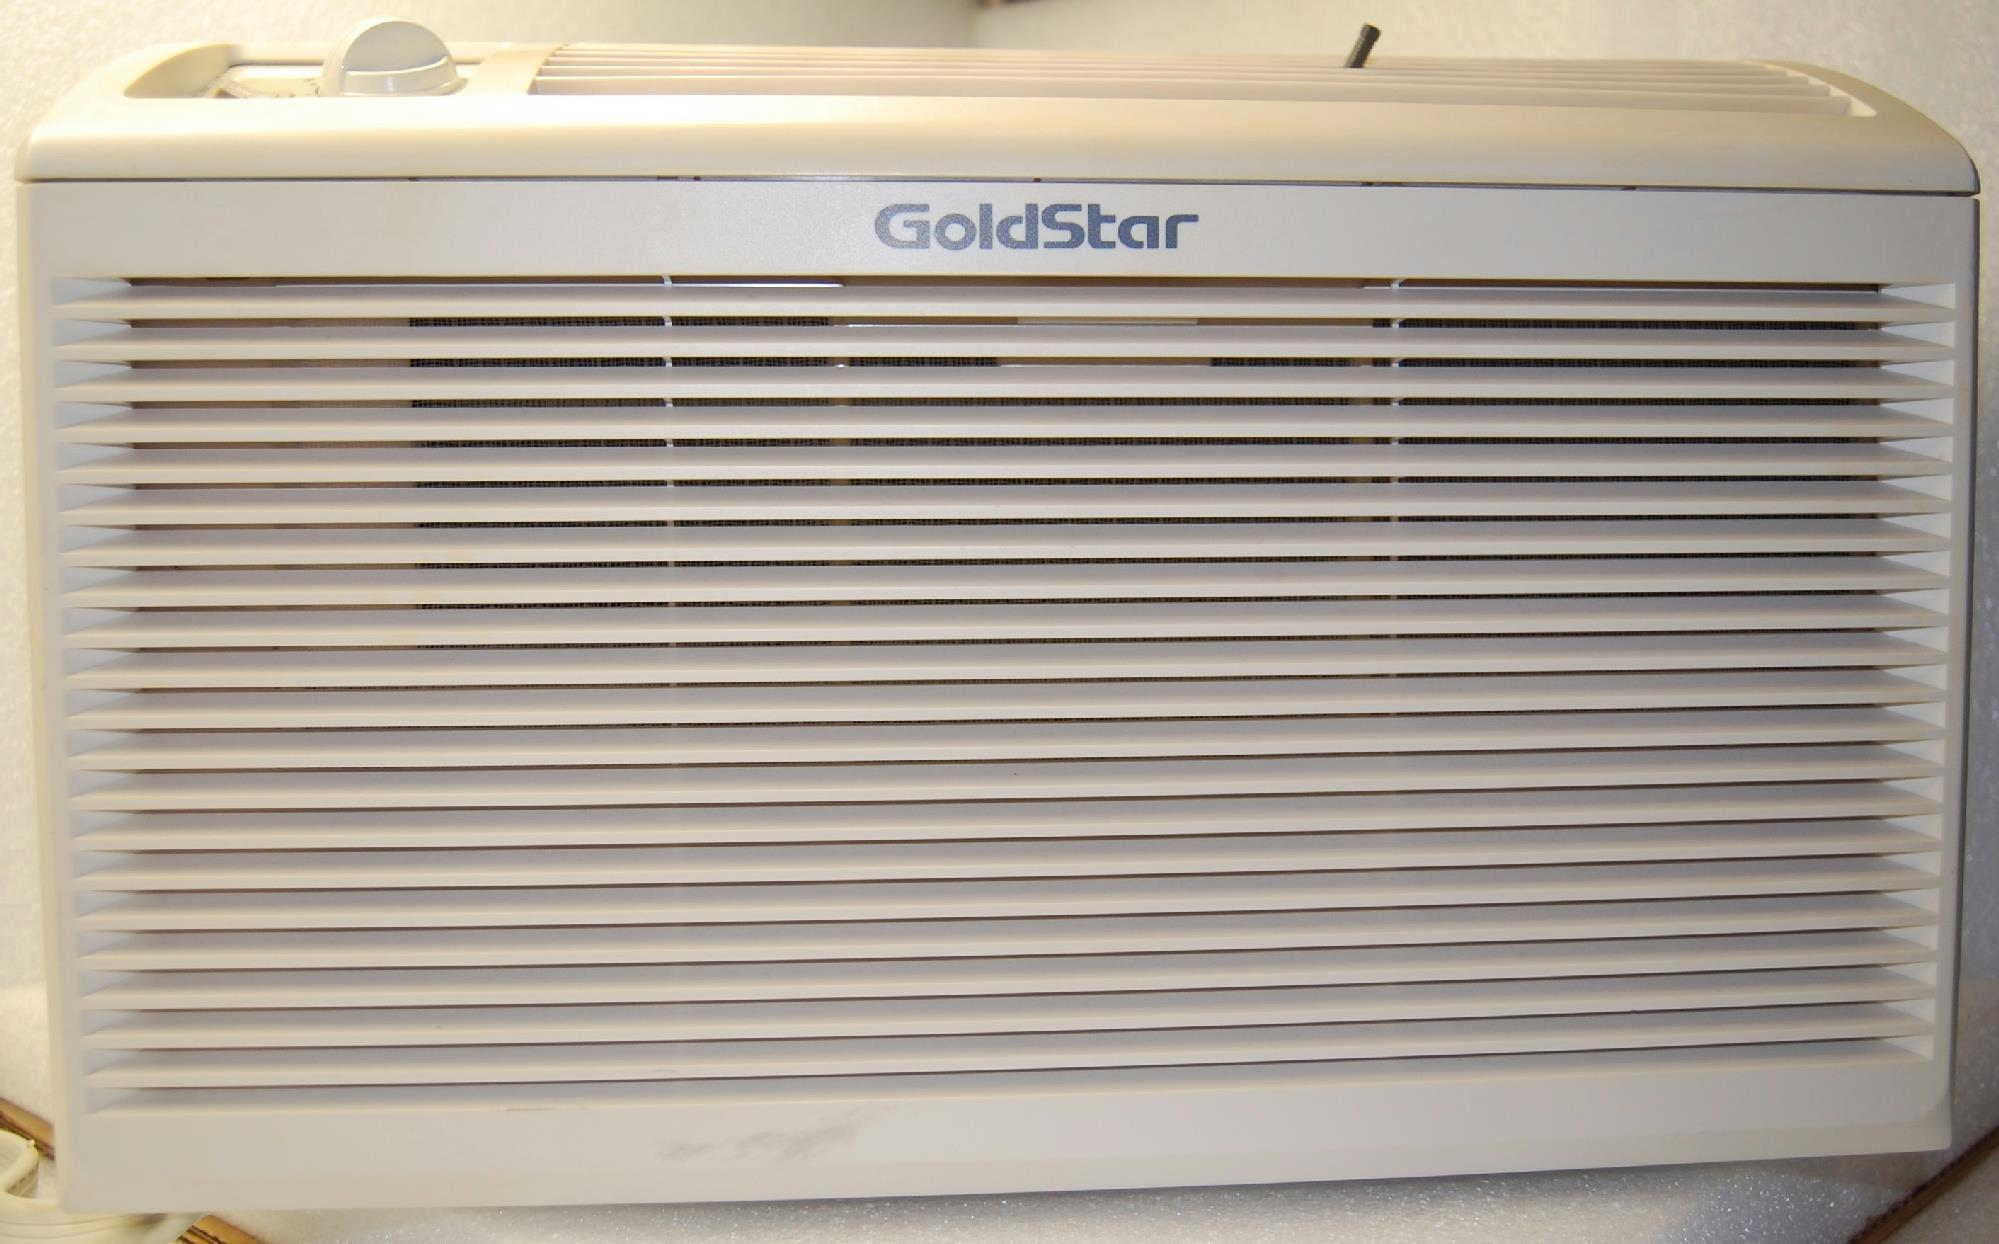 LG Goldstar GWHD5000 5000 BTU Window Air Conditioner 80005519 eBay #947037